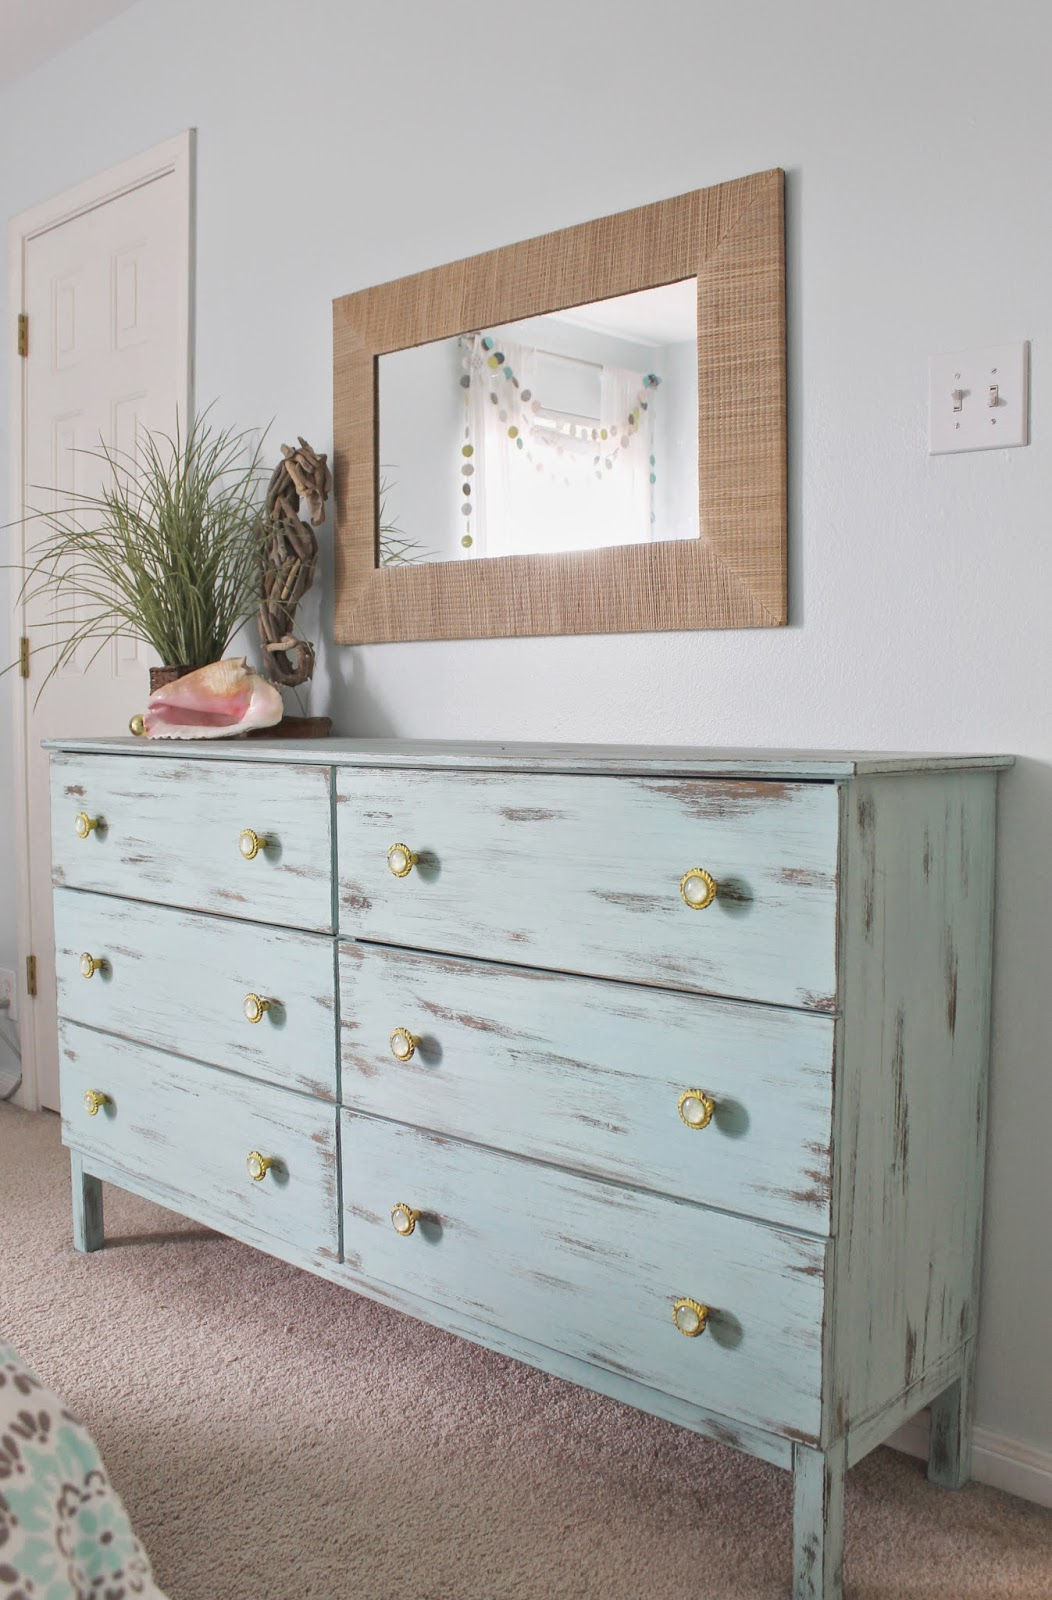 Ikea Unfinished Dresser The Ragged Wren : Shabby-beach Bedroom